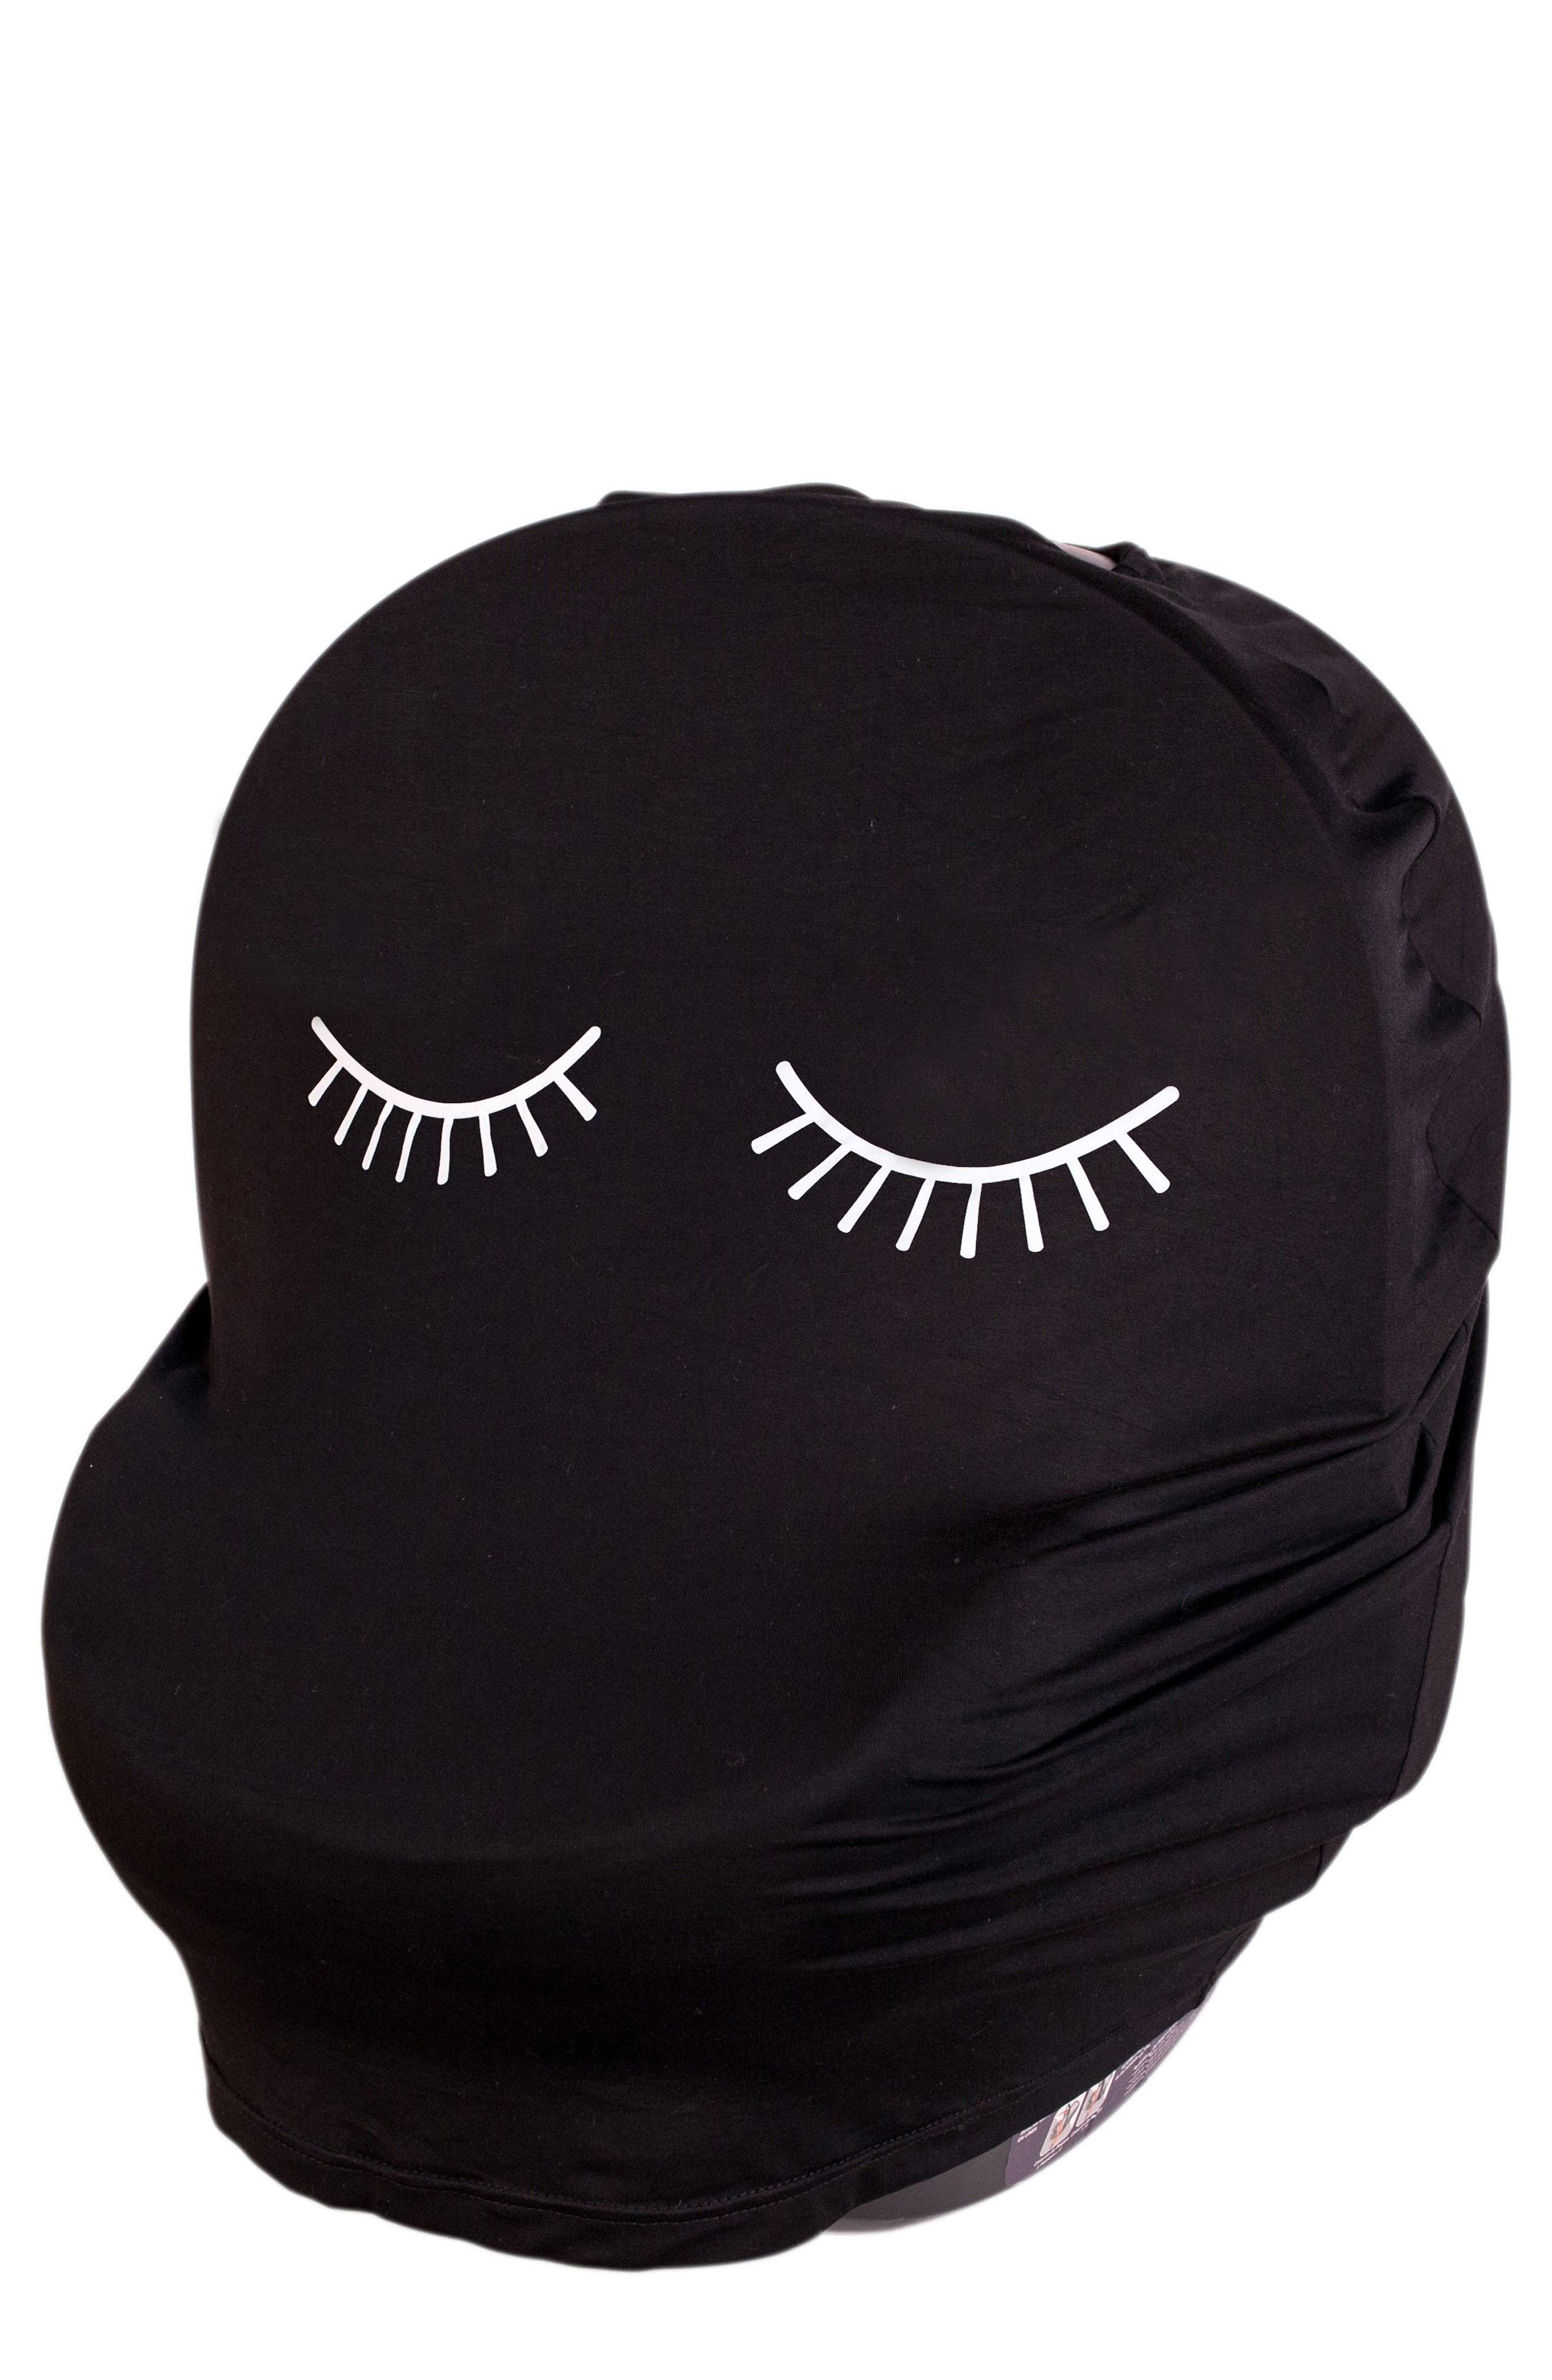 5-in-1 Car Seat Cover,                         Main,                         color, Black Lashes